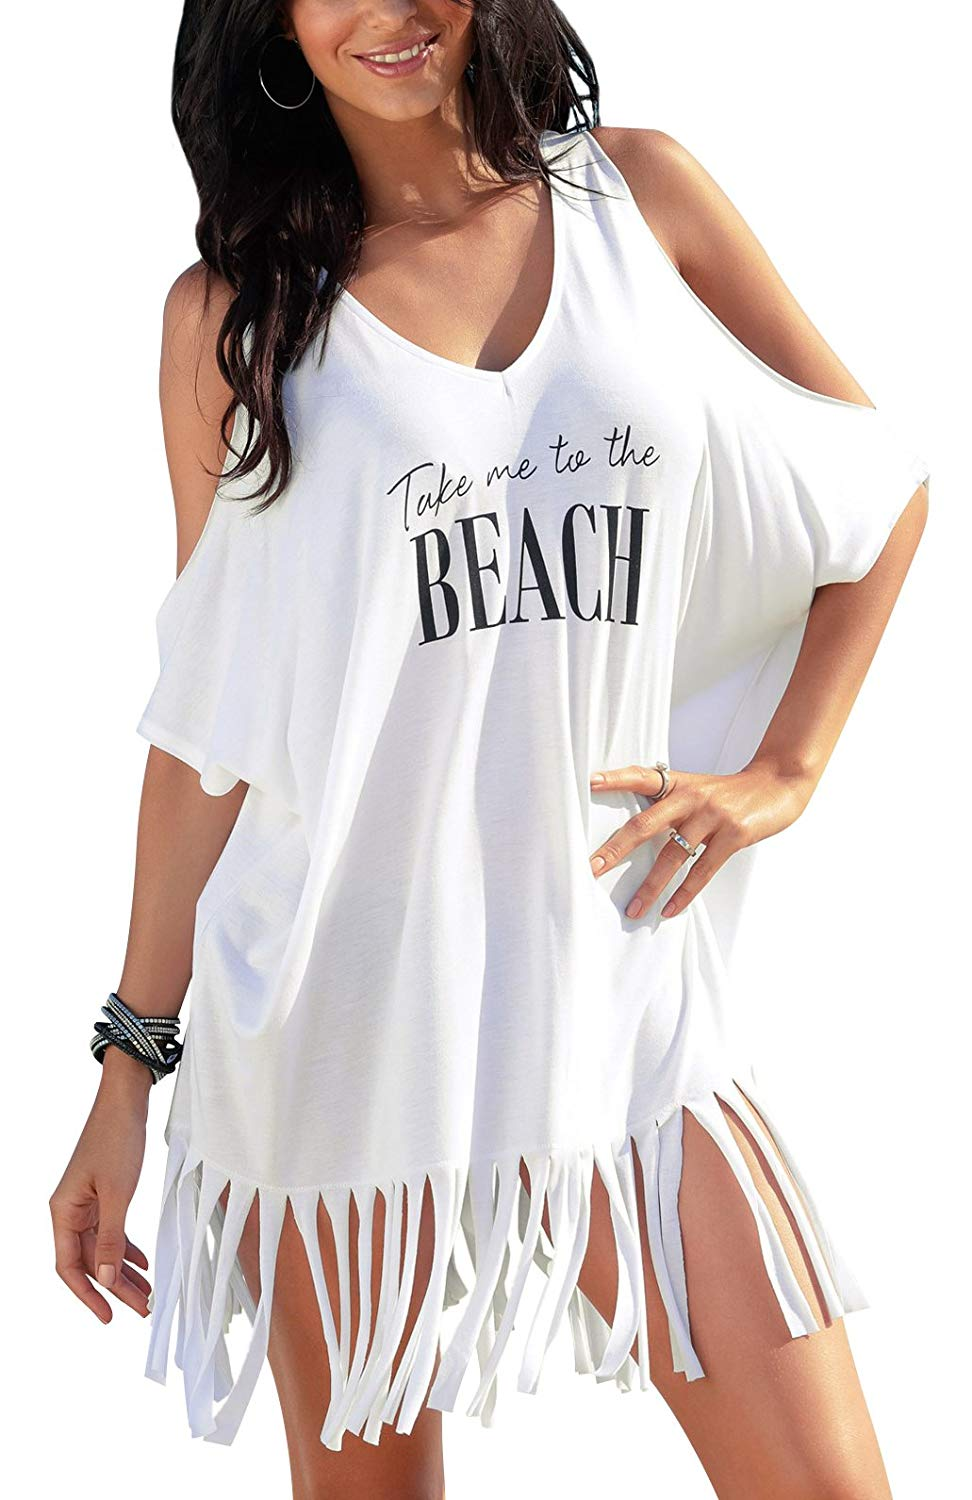 451539e50d Get Quotations · Oryer Womens Letters Print Baggy Swimwear Bikini Cover up  Beach Dress T-Shirt